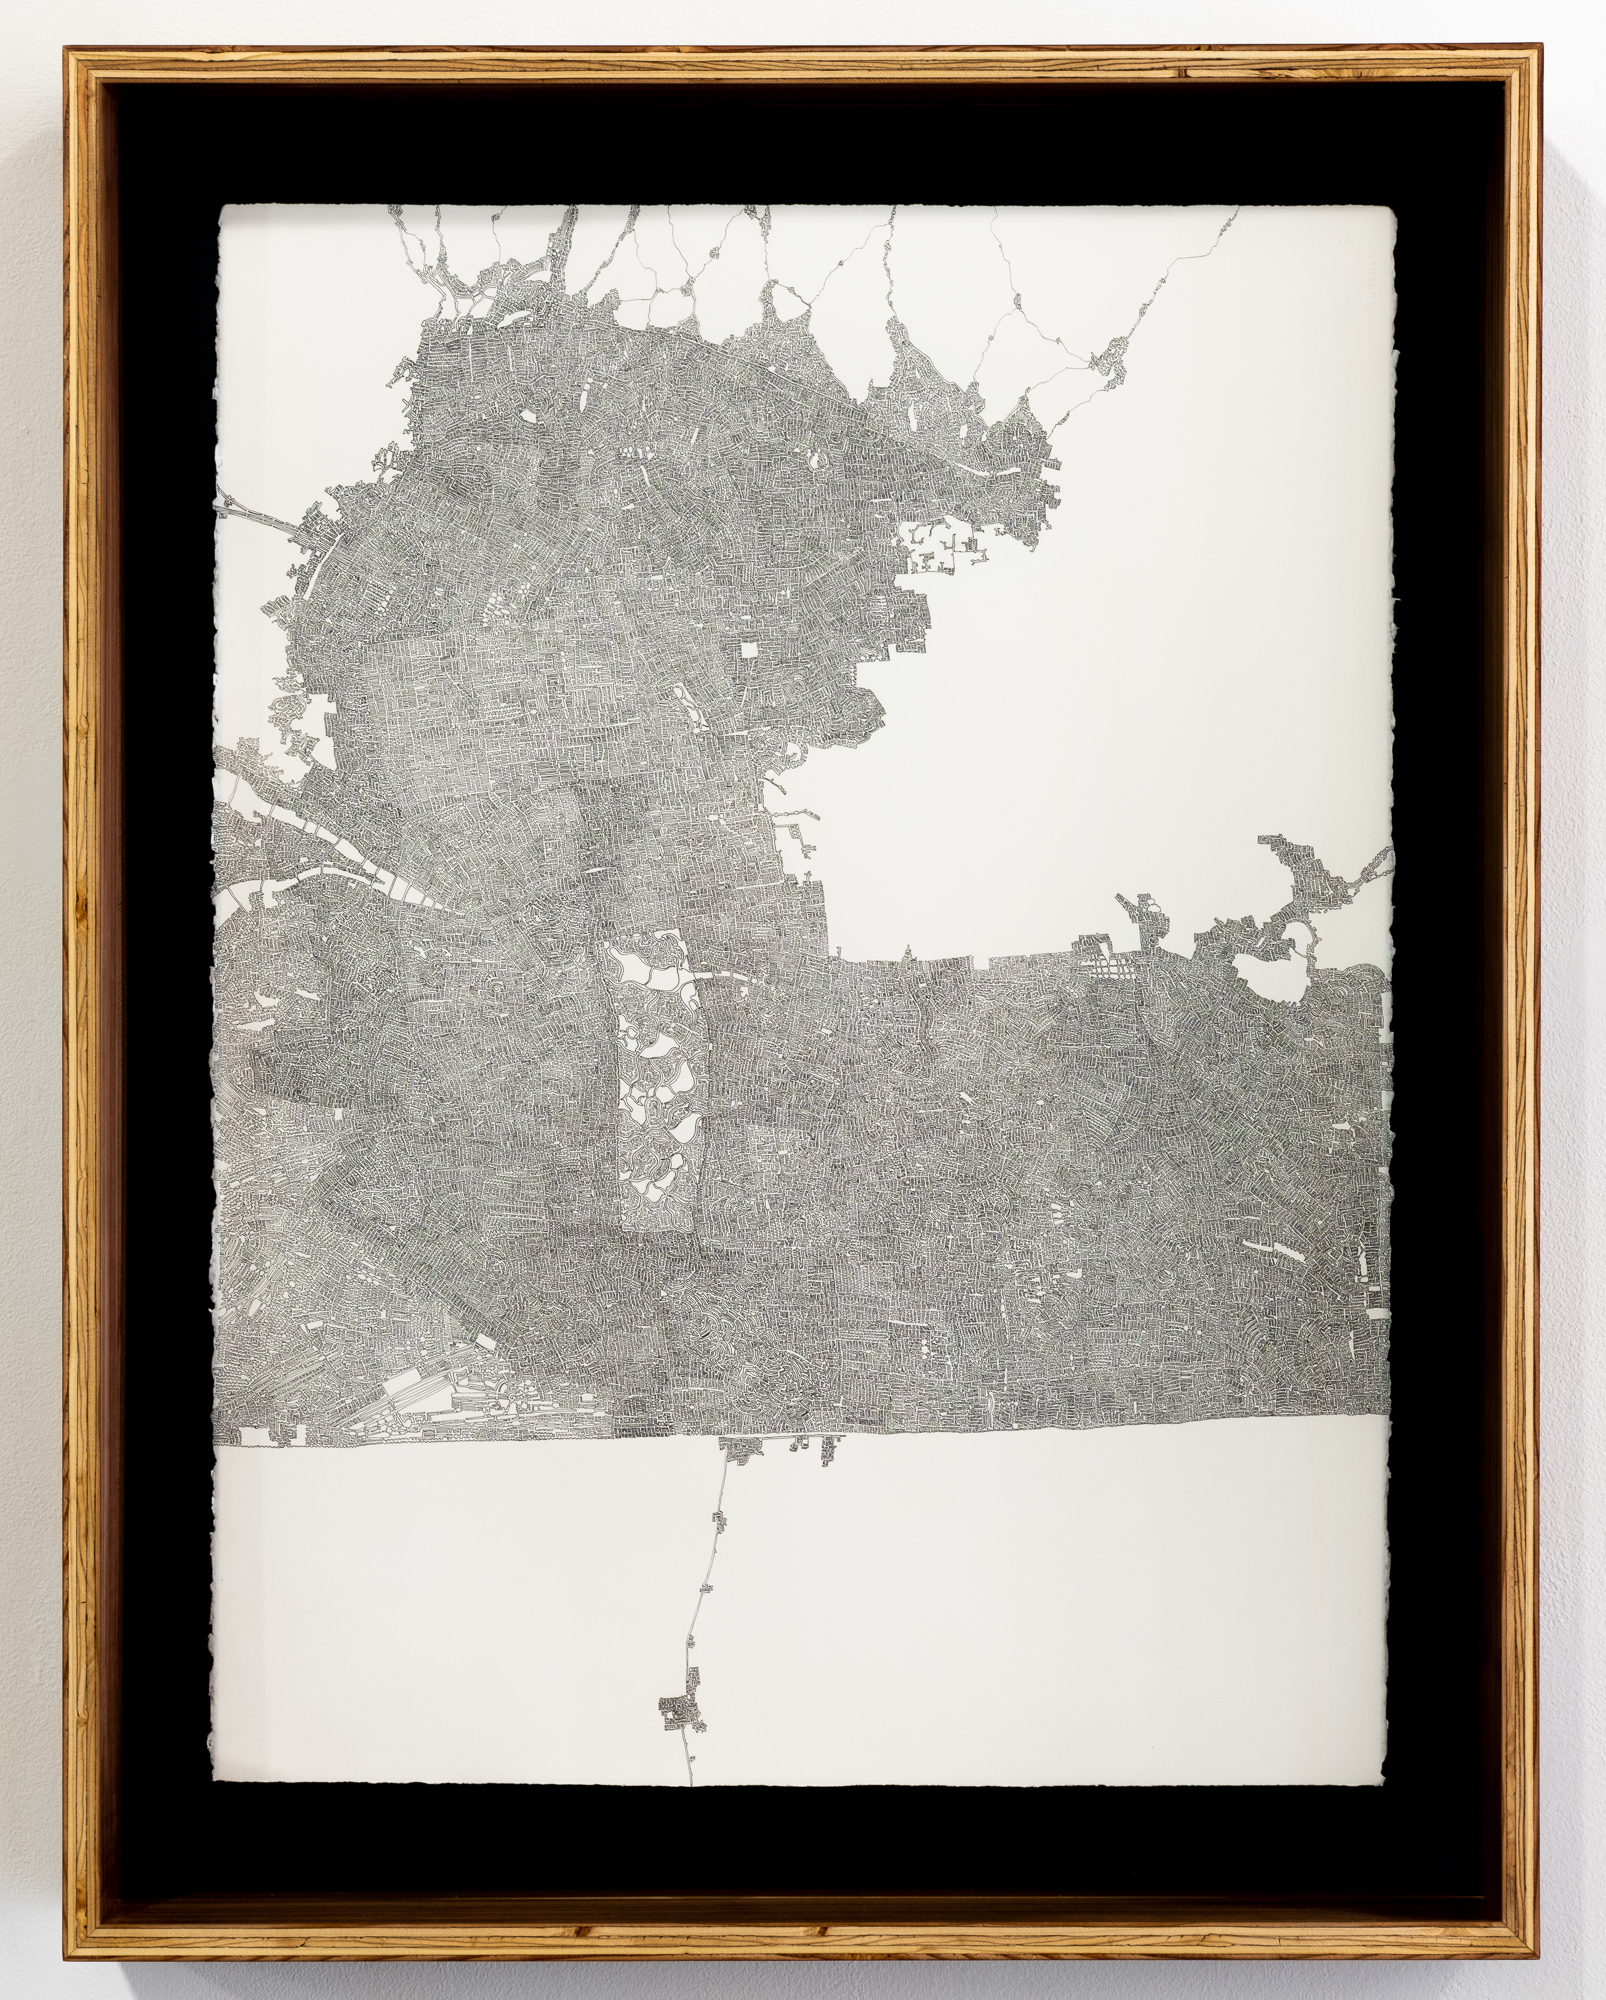 Liminal (Our Land)  Marc Boyson    ink on rives BFK   35.5 x 27.5 inches MBO 001G